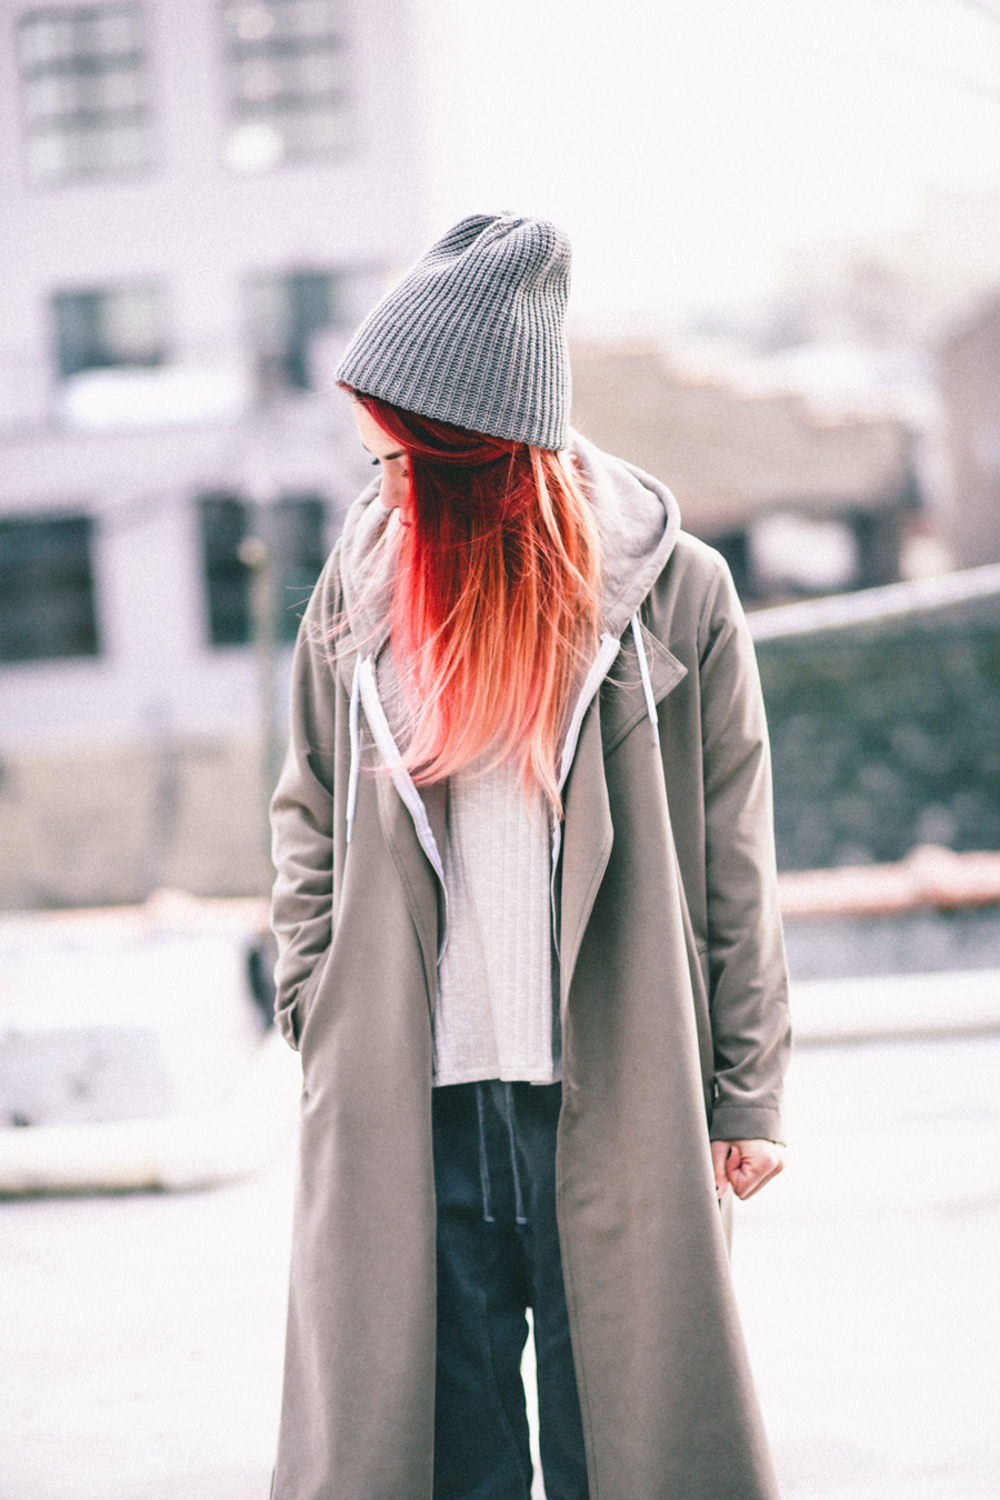 Le Happy wearing American Apparel trench and grey beanie